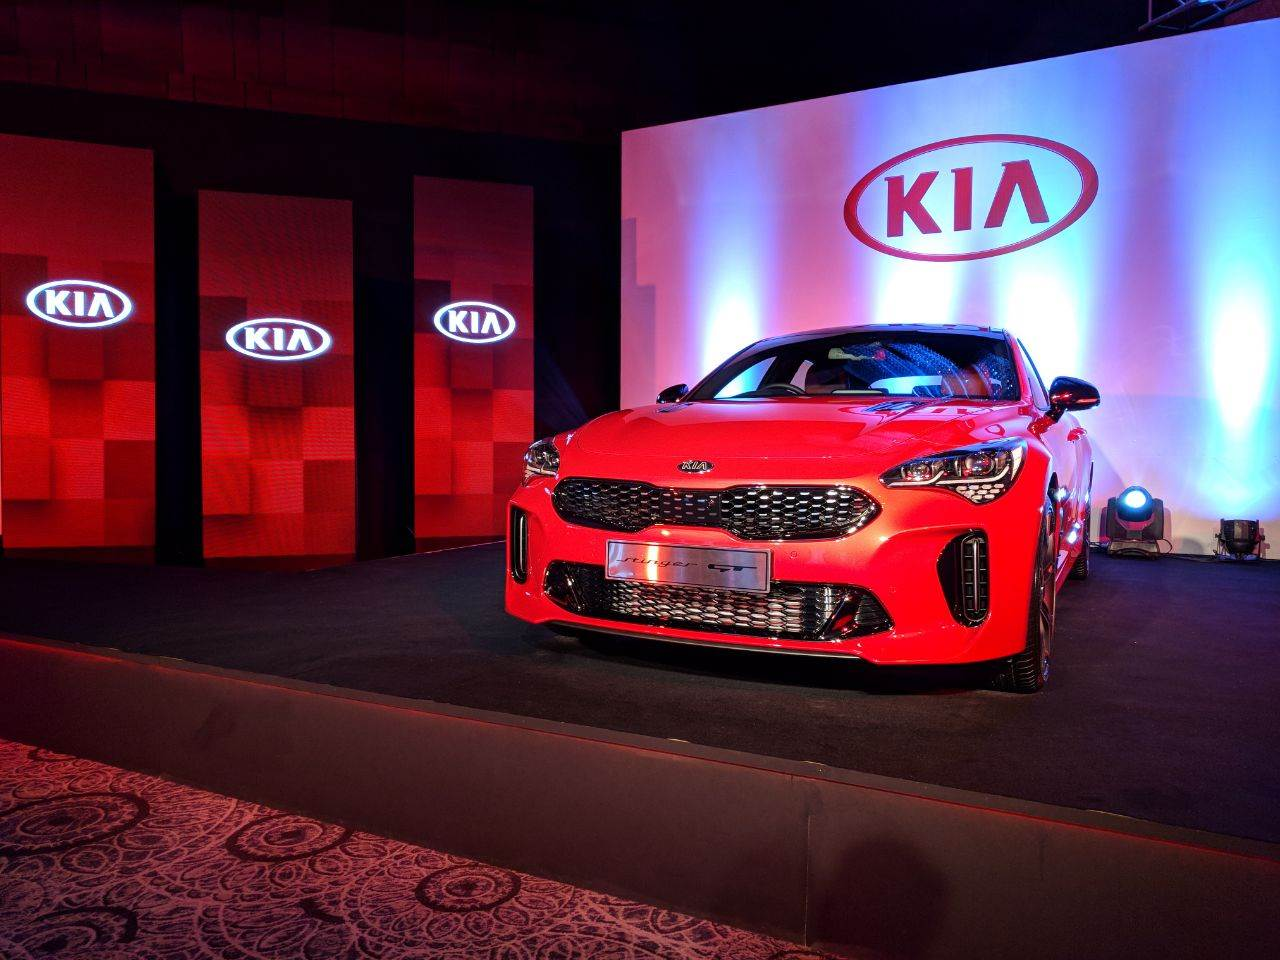 Kia Stinger sedan shown ahead of Auto Expo 2018